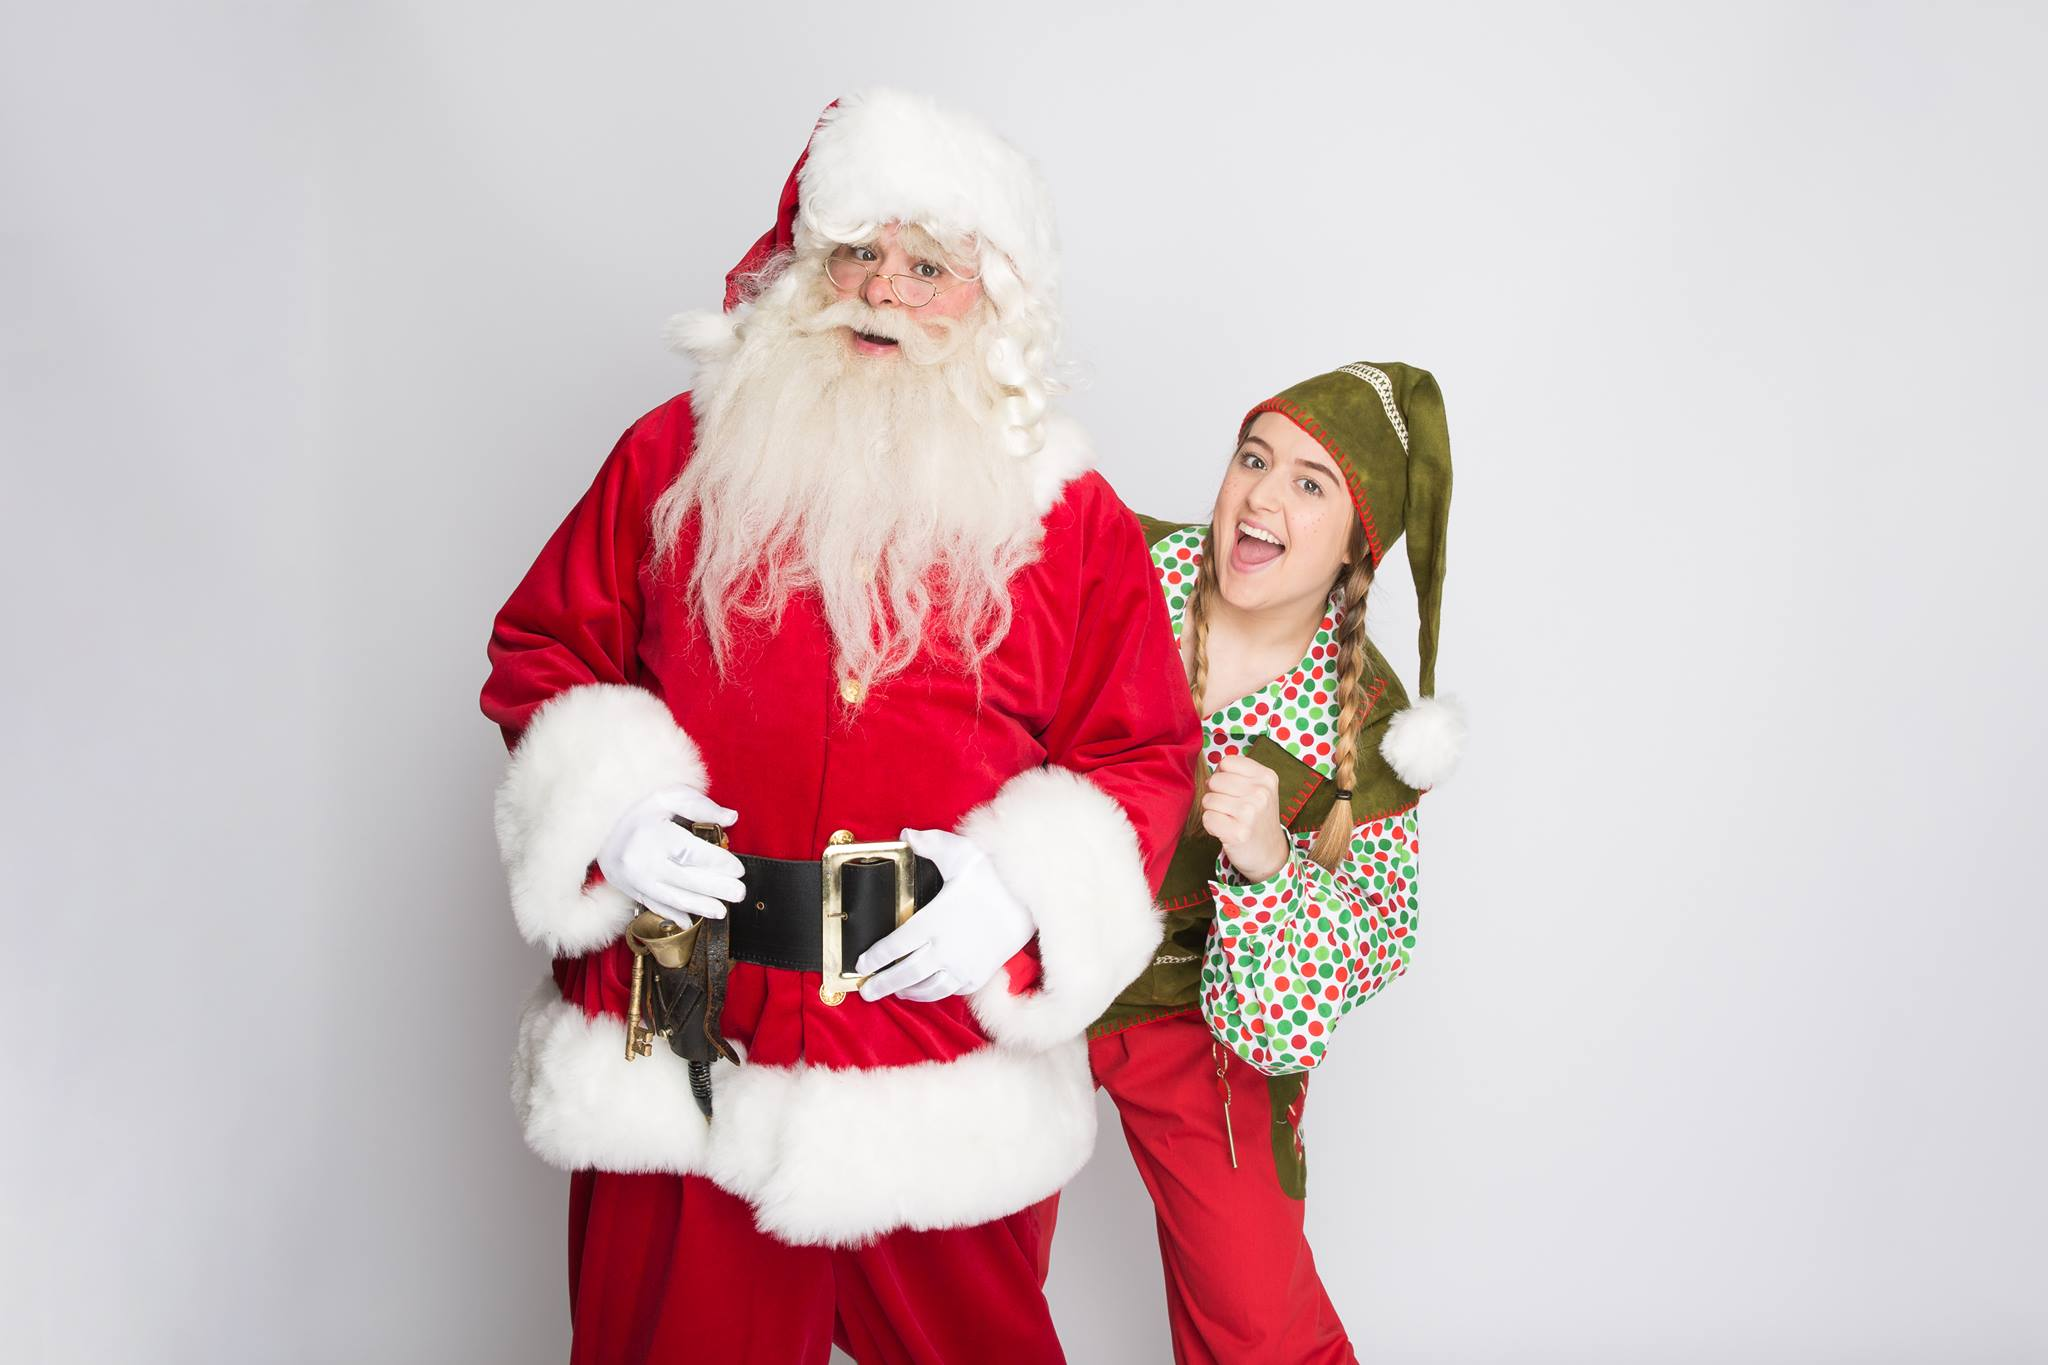 Santa & Ellie the elf